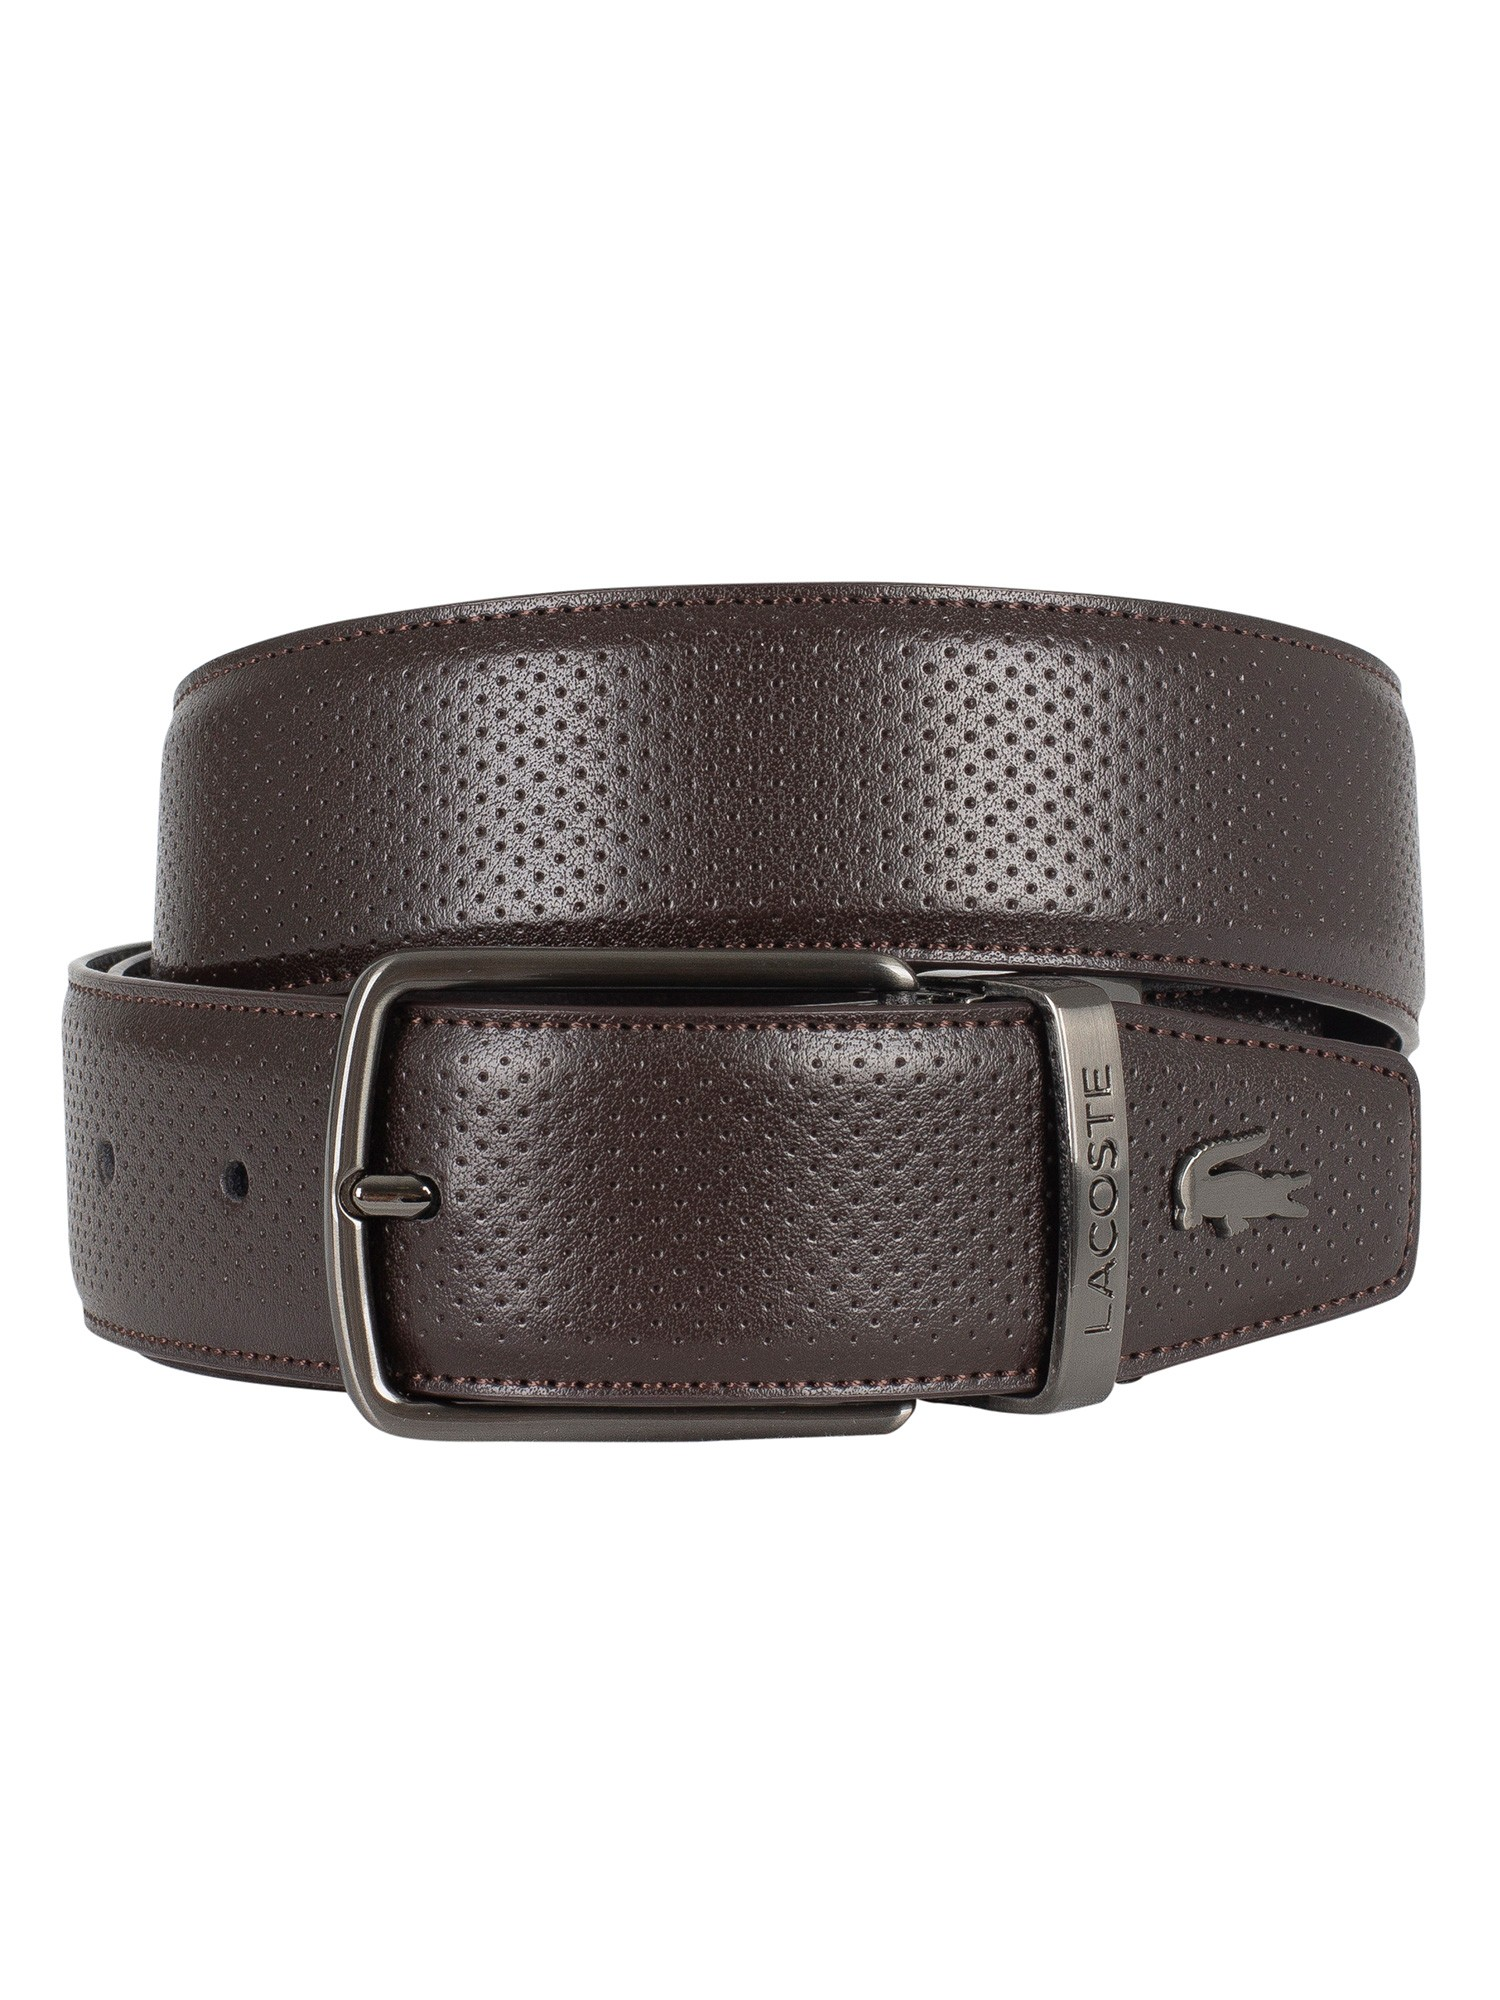 12639e02d08d2b Lacoste Brown Reversible Punched Leather Belt